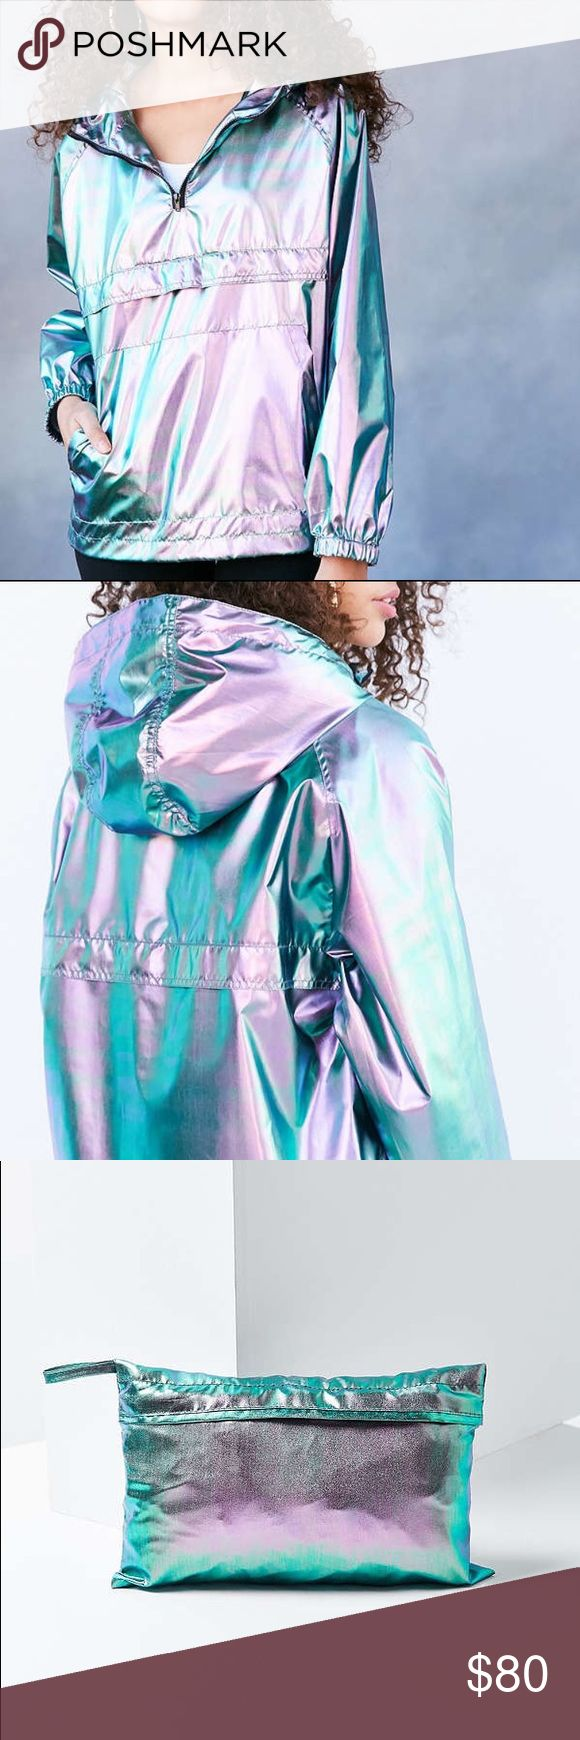 Iridescent Windbreaker Jacket 🌈 NWOT. Shine bright even while taking cover in this iridescent popover windbreaker jacket. In a super light weight water-resistant construction that packs up into a mini travel pouch. Fits relaxed with a zip-front chest, kangaroo pouch pocket and adjustable draw chord hood. Includes jacket + mini zip pouch. Runs big, so may fit up to L-XL. silence + noise Jackets & Coats